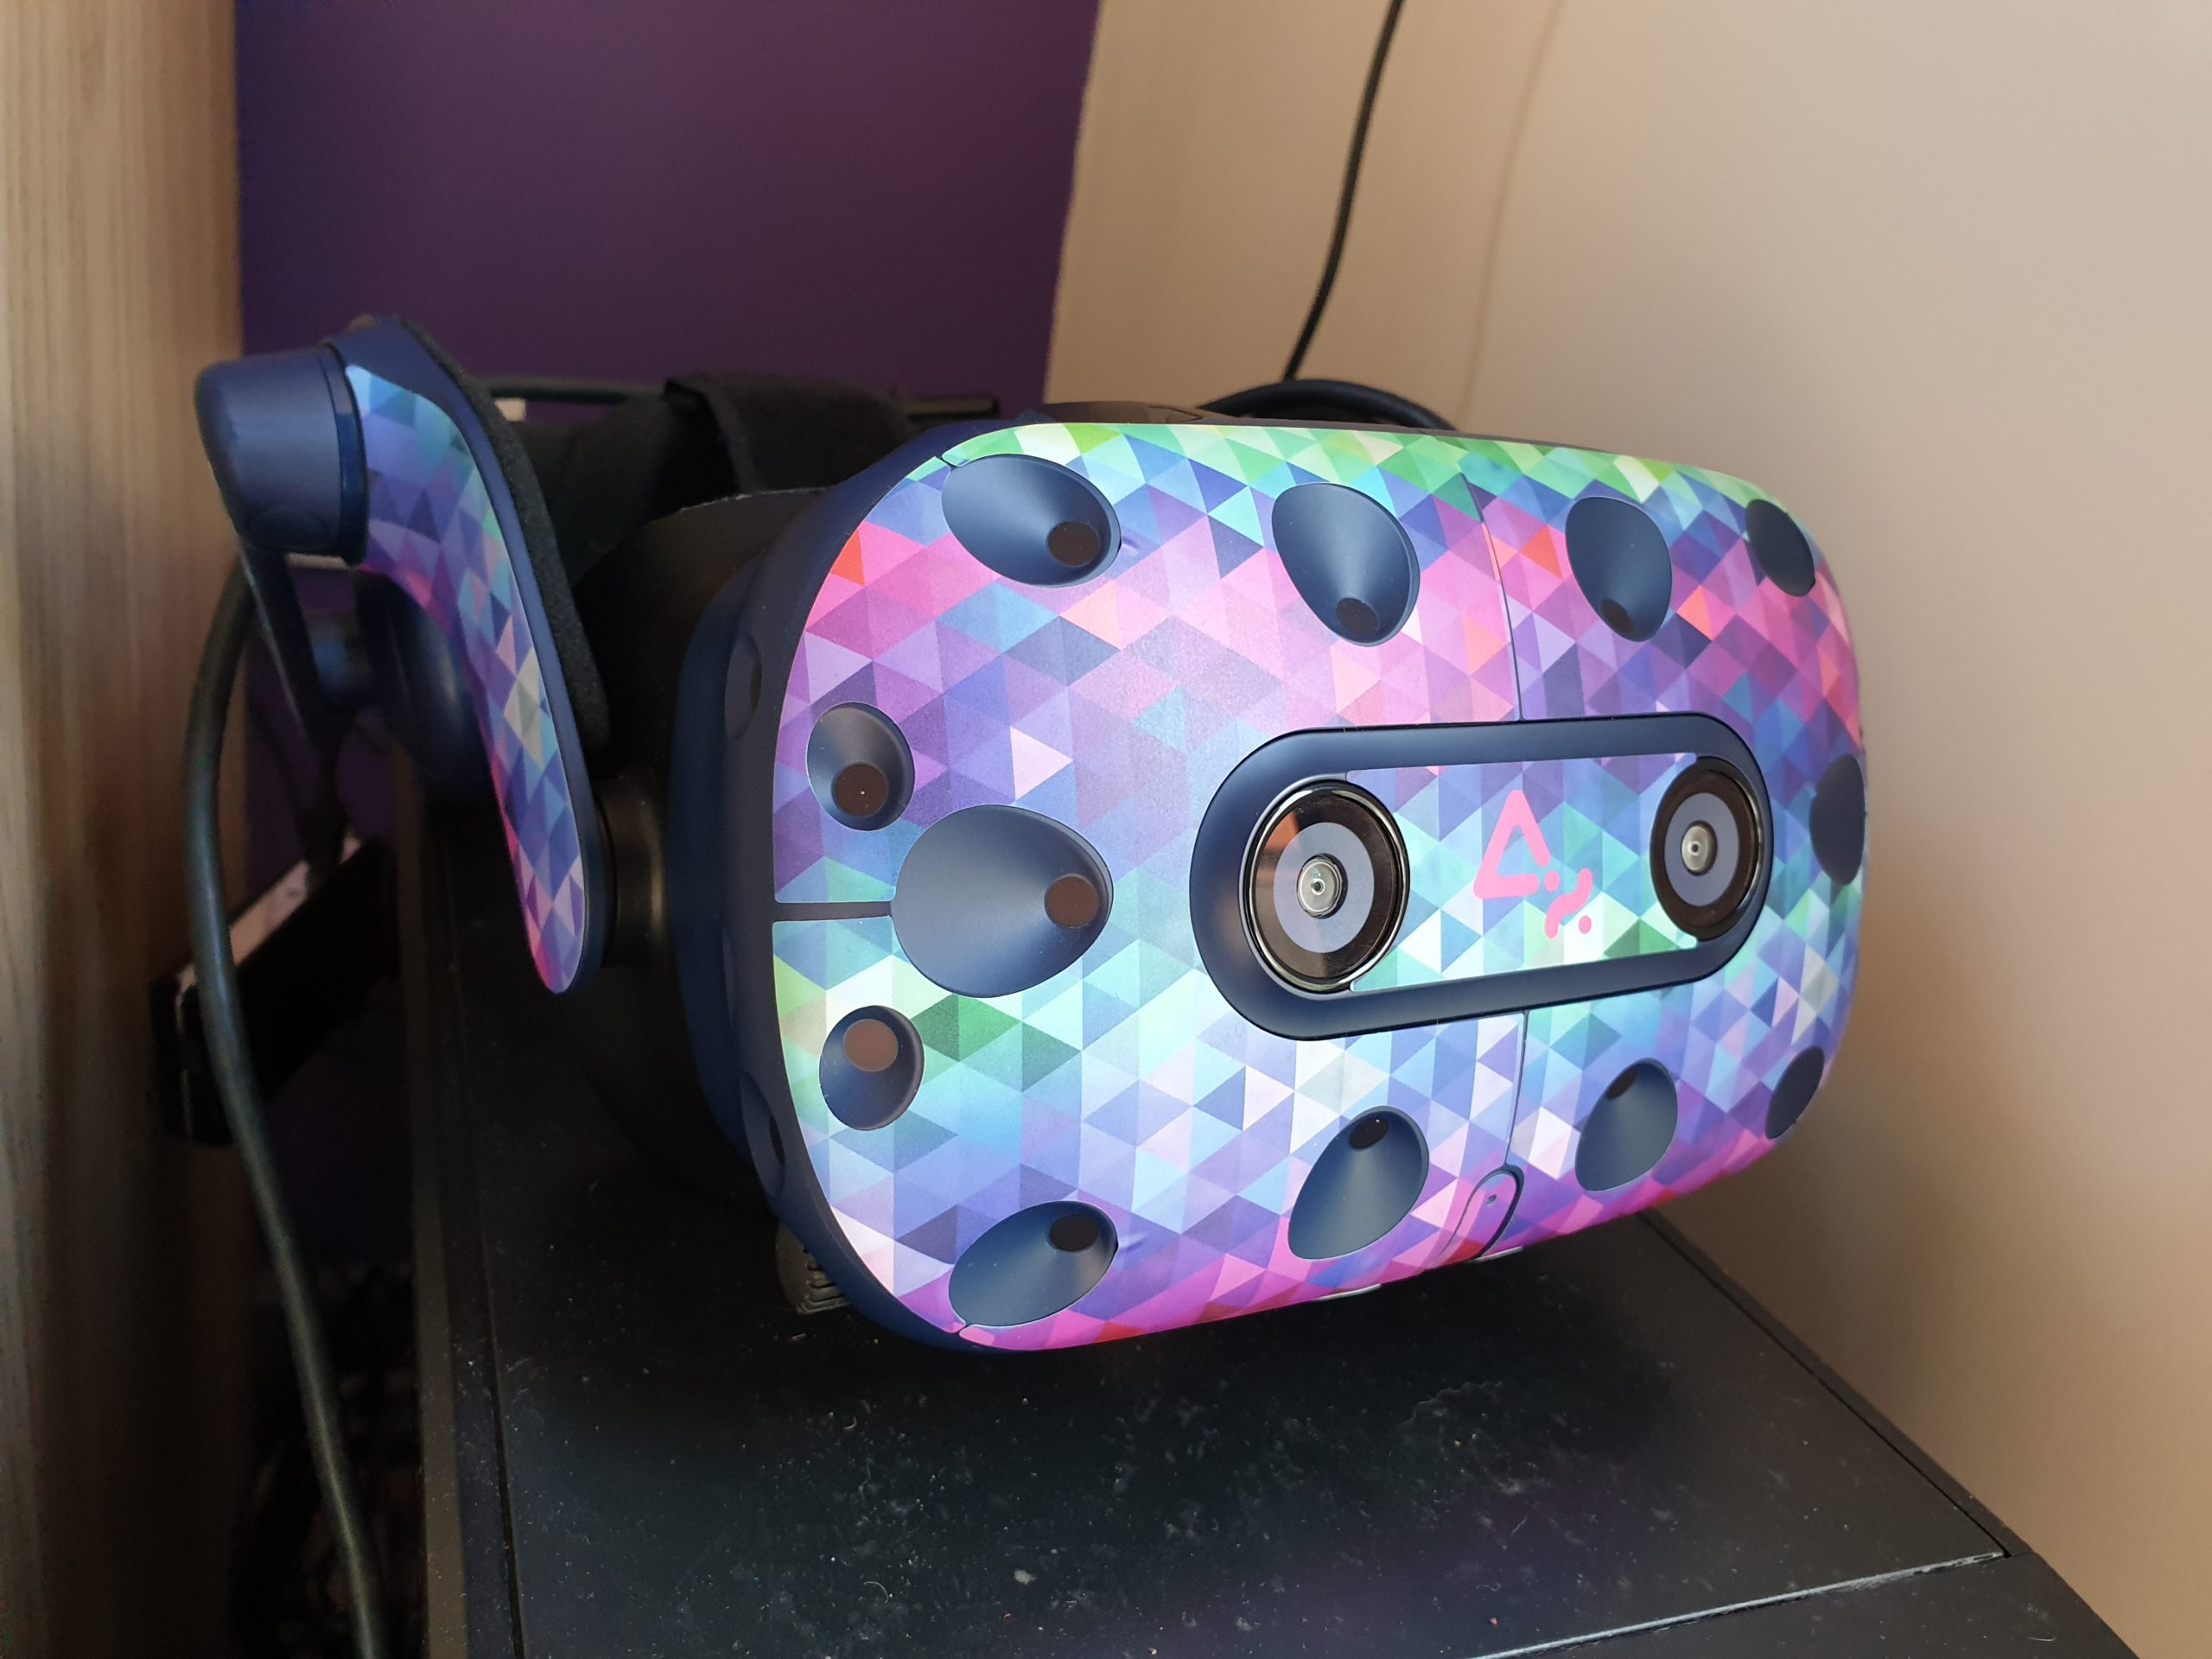 We need more colour in the VR world